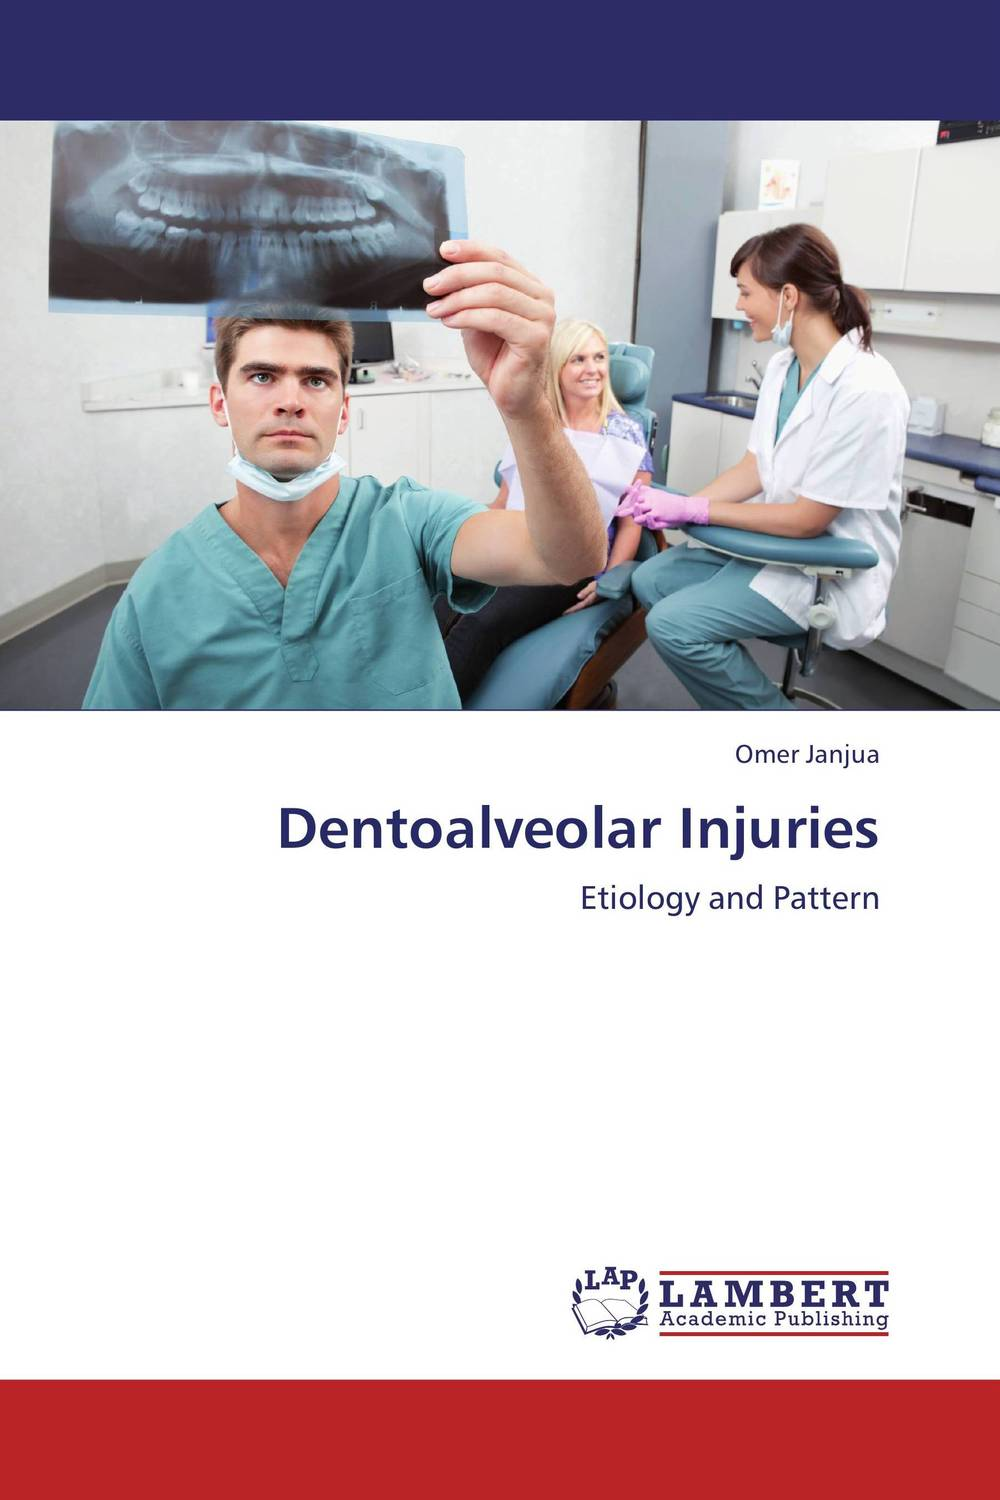 цена на Dentoalveolar Injuries